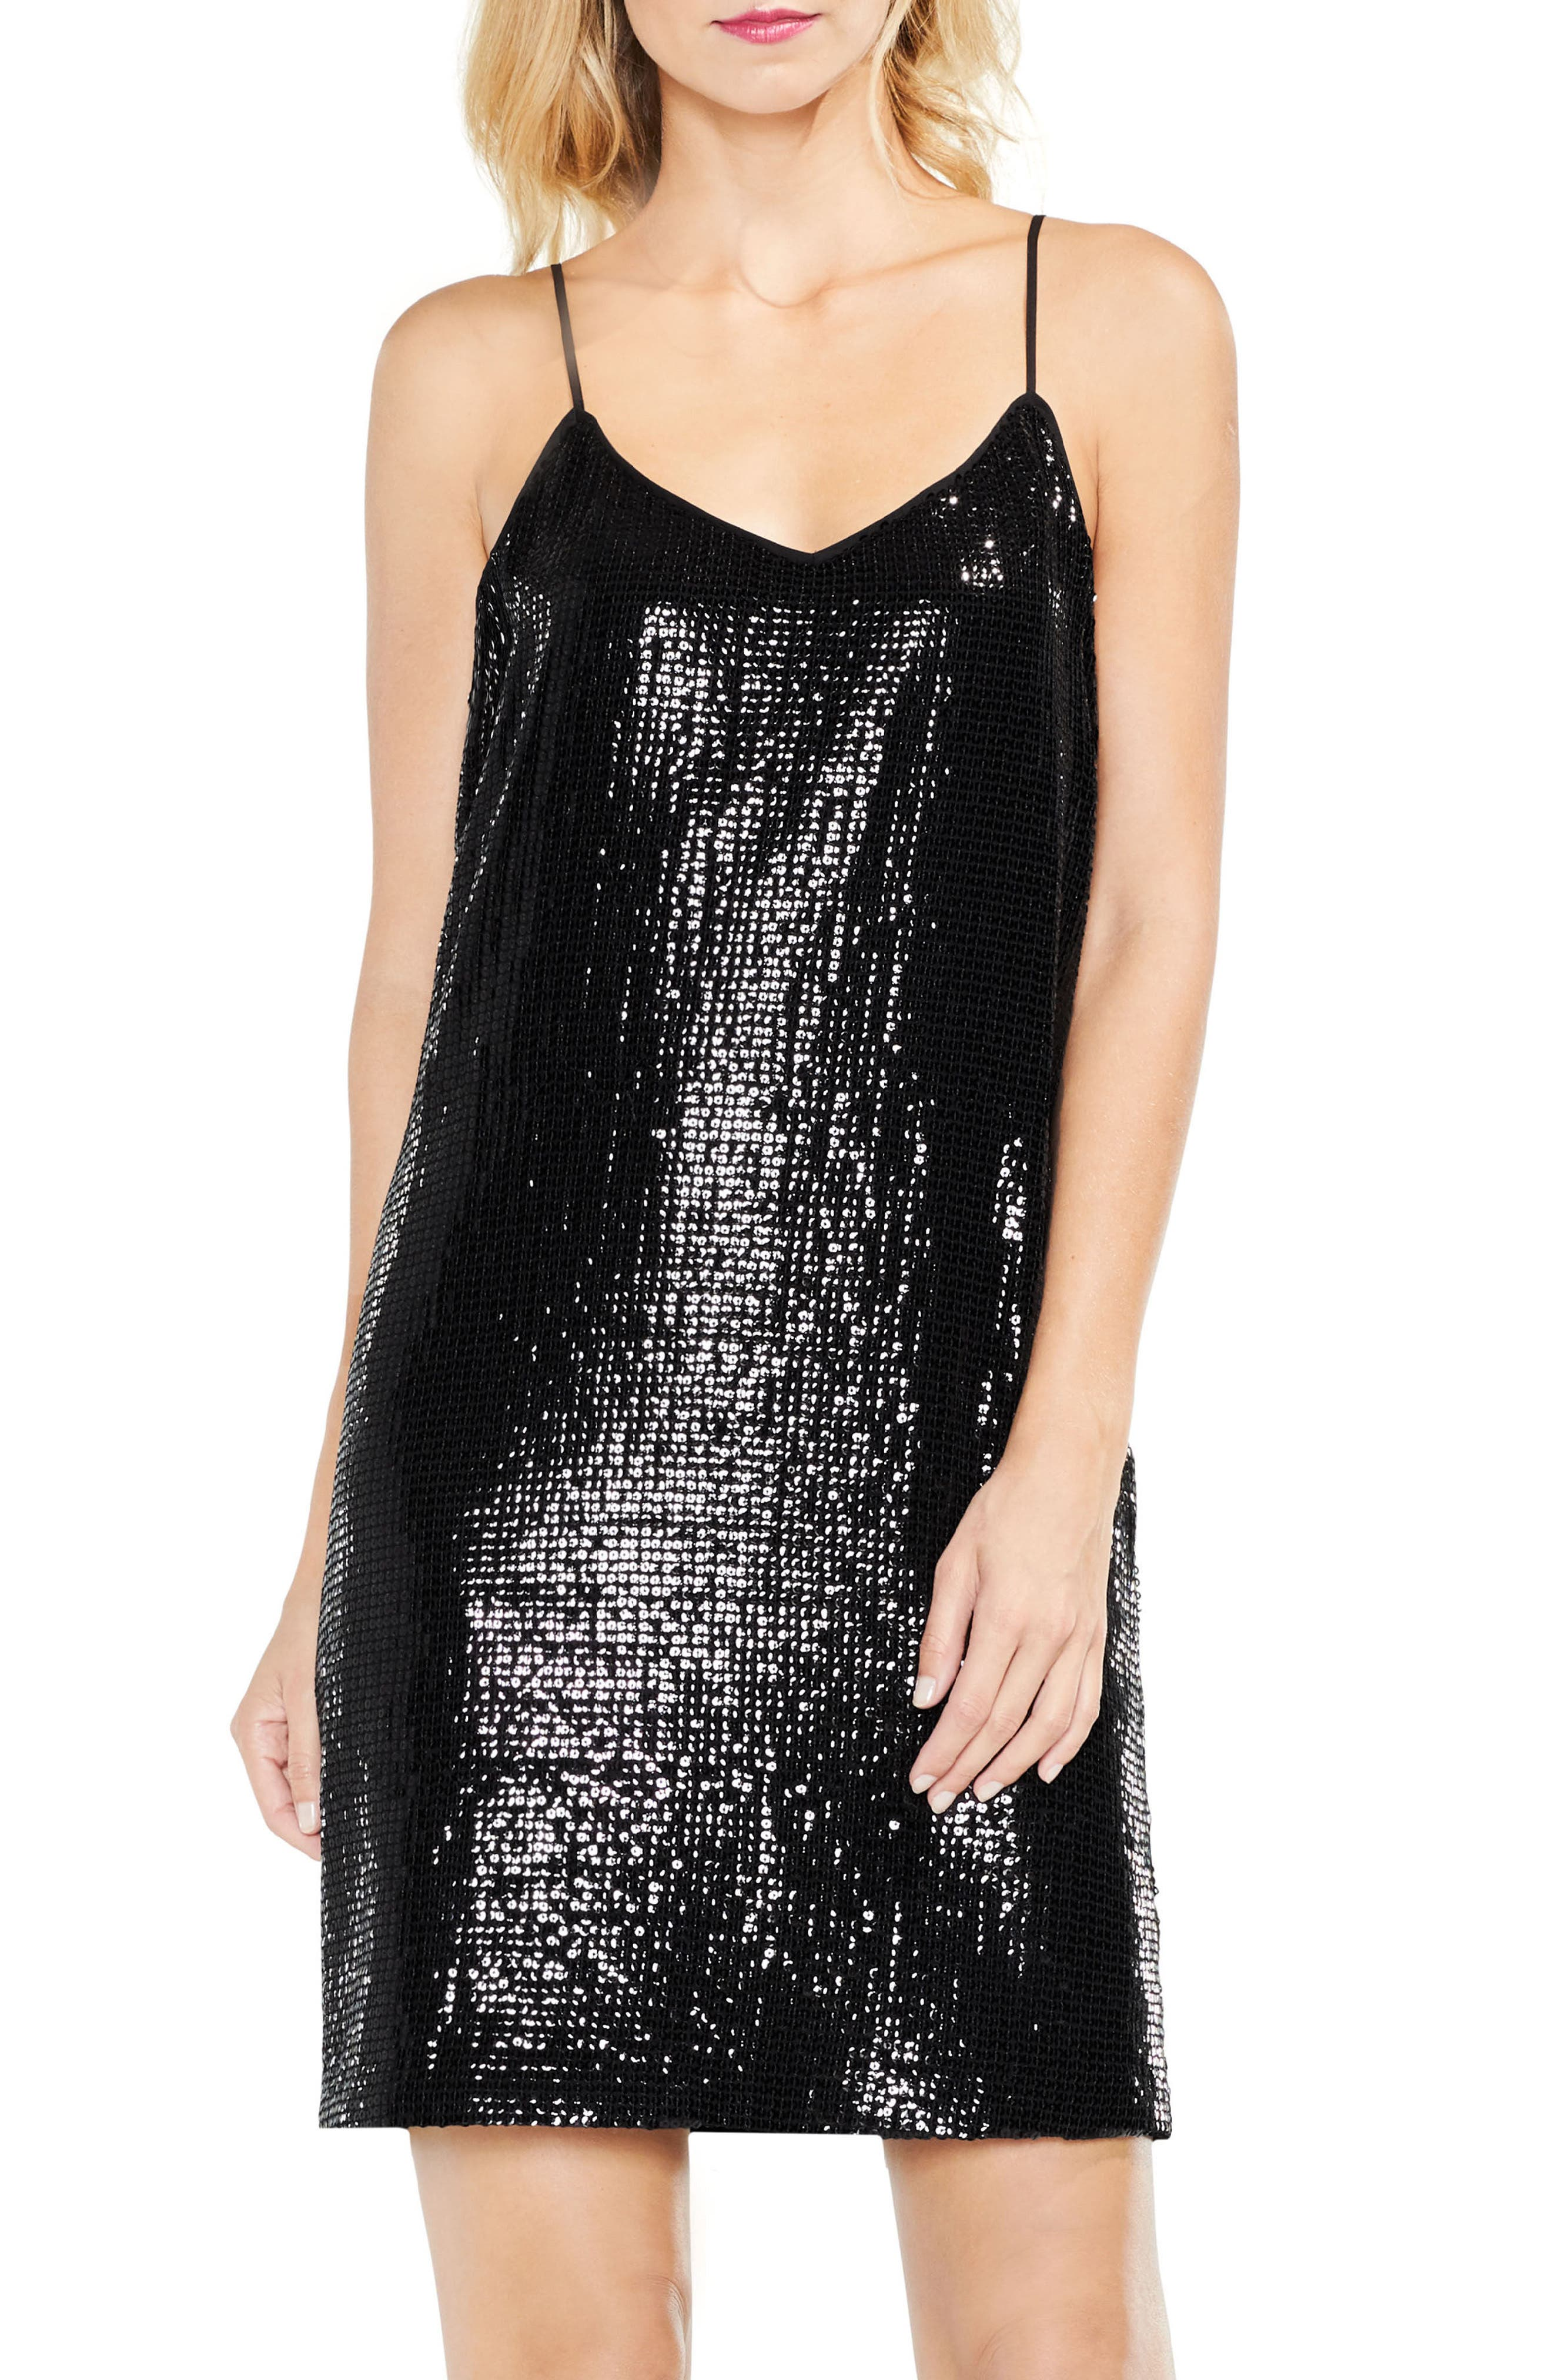 Alternate Image 1 Selected - Vince Camuto Sequined Slipdress